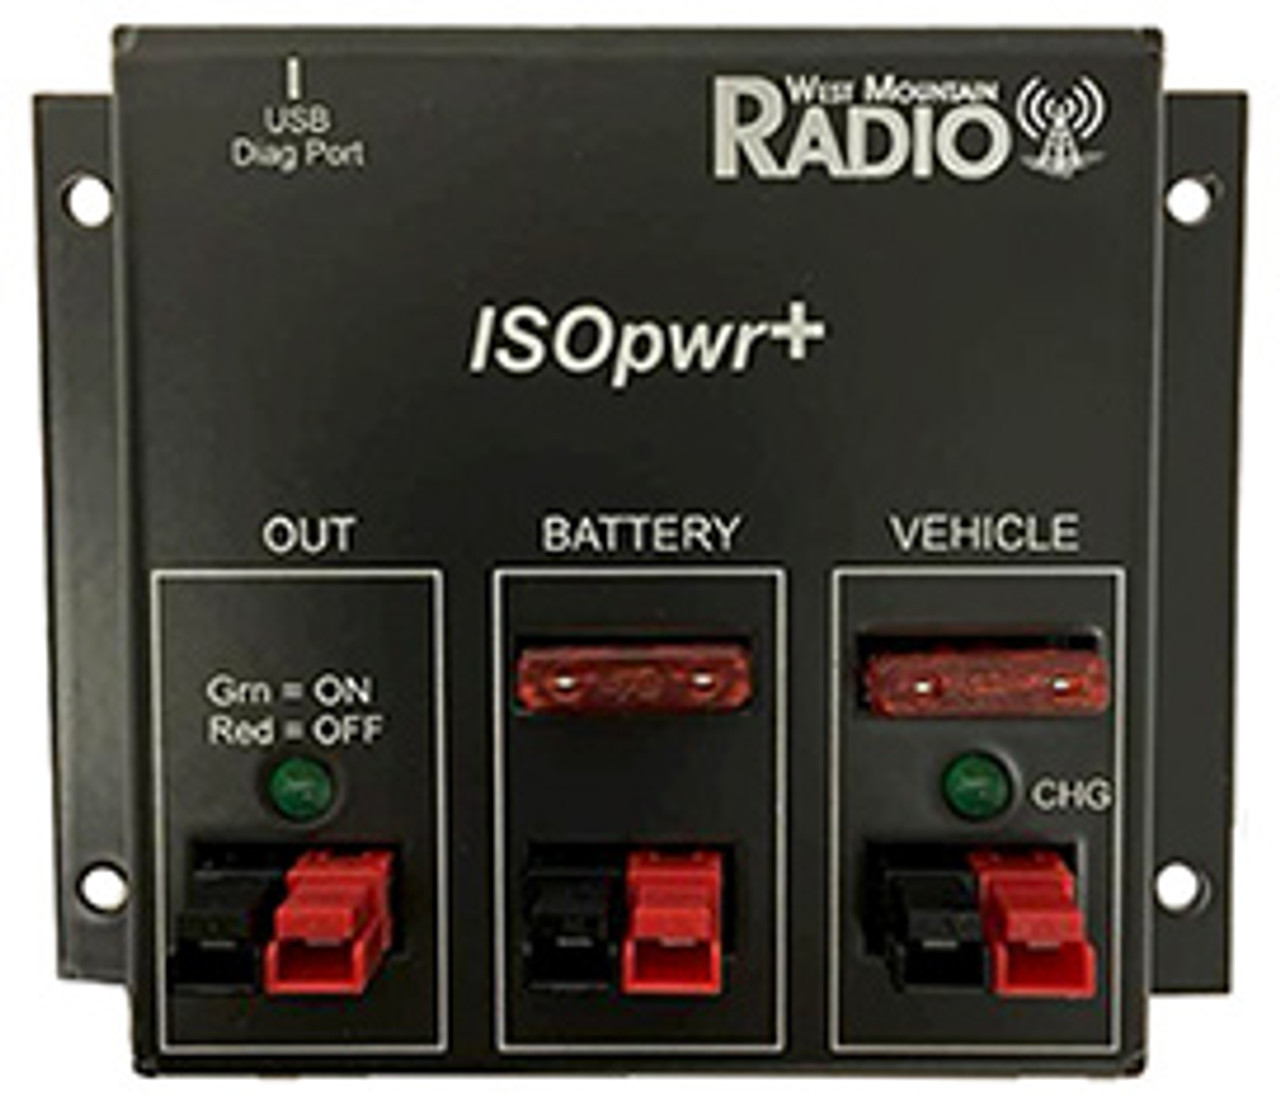 West Mountain Radio ISOpwr+ – Auxiliary Battery Isolator